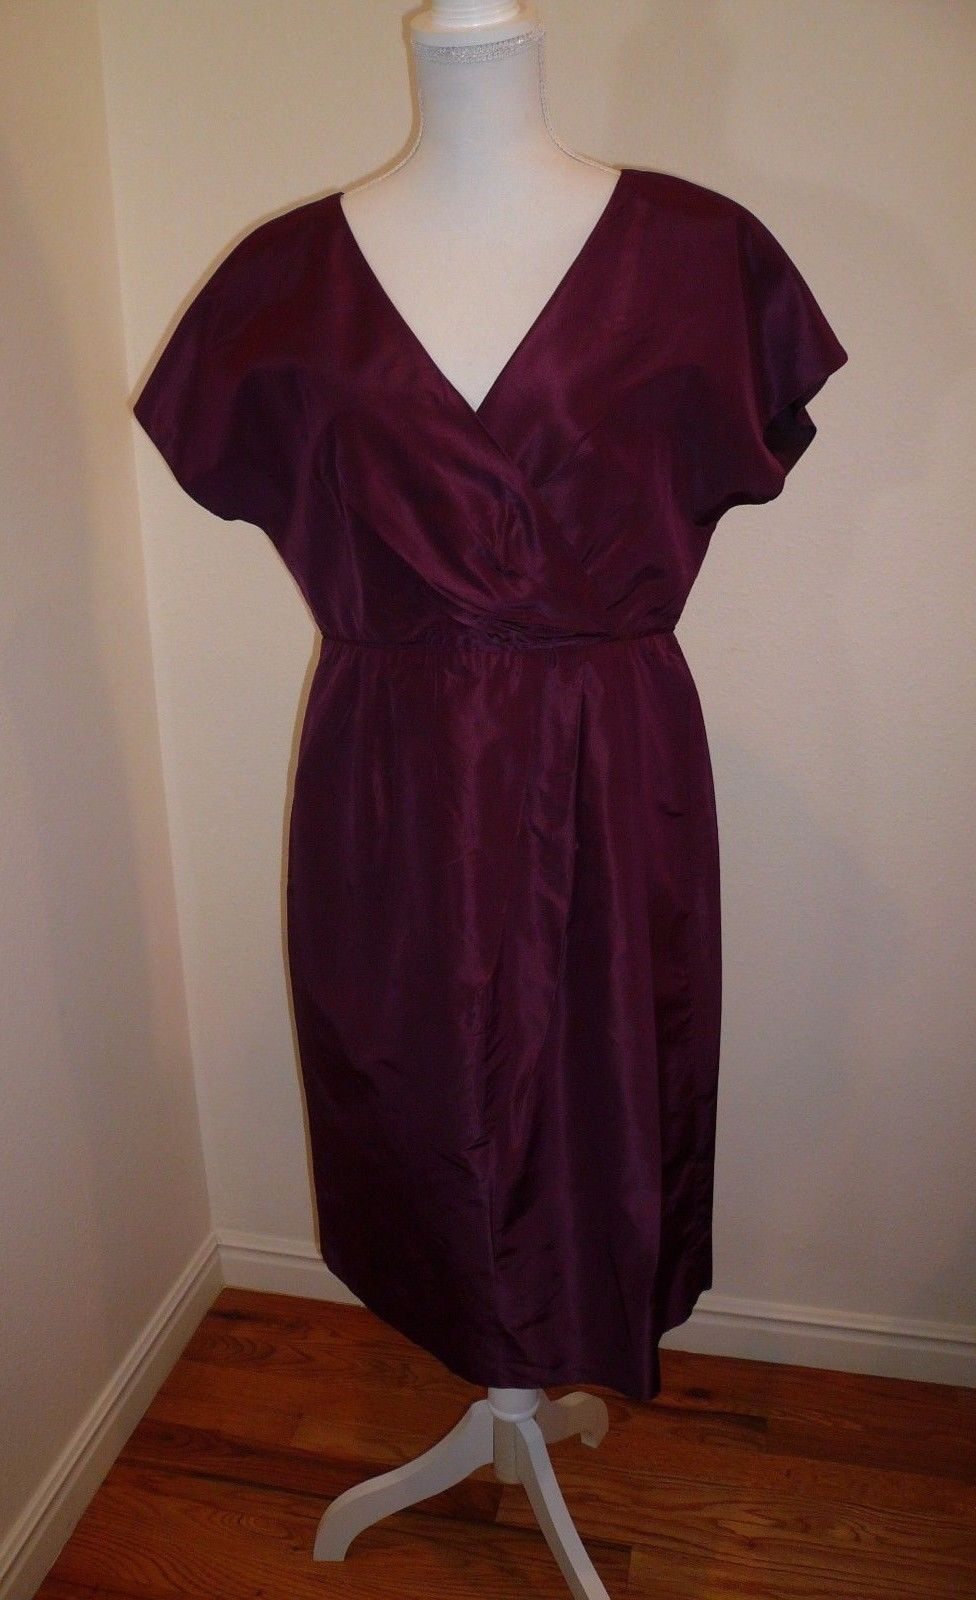 Cool great j crew lexa burgundy silk taffeta dress size vneck